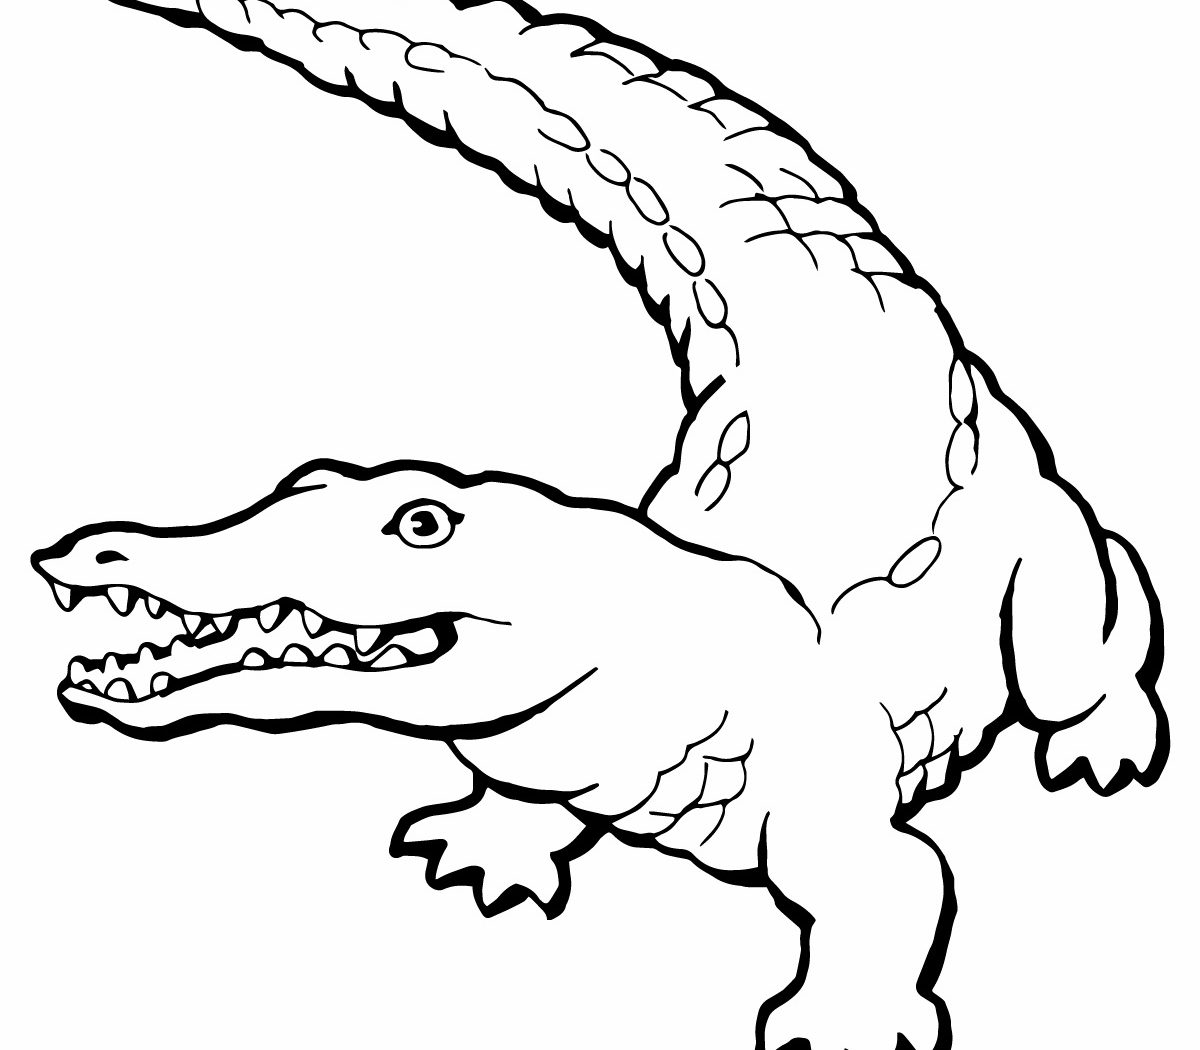 1200x1050 Good Alligator Colorings For Your Picture Free Printable Coloring